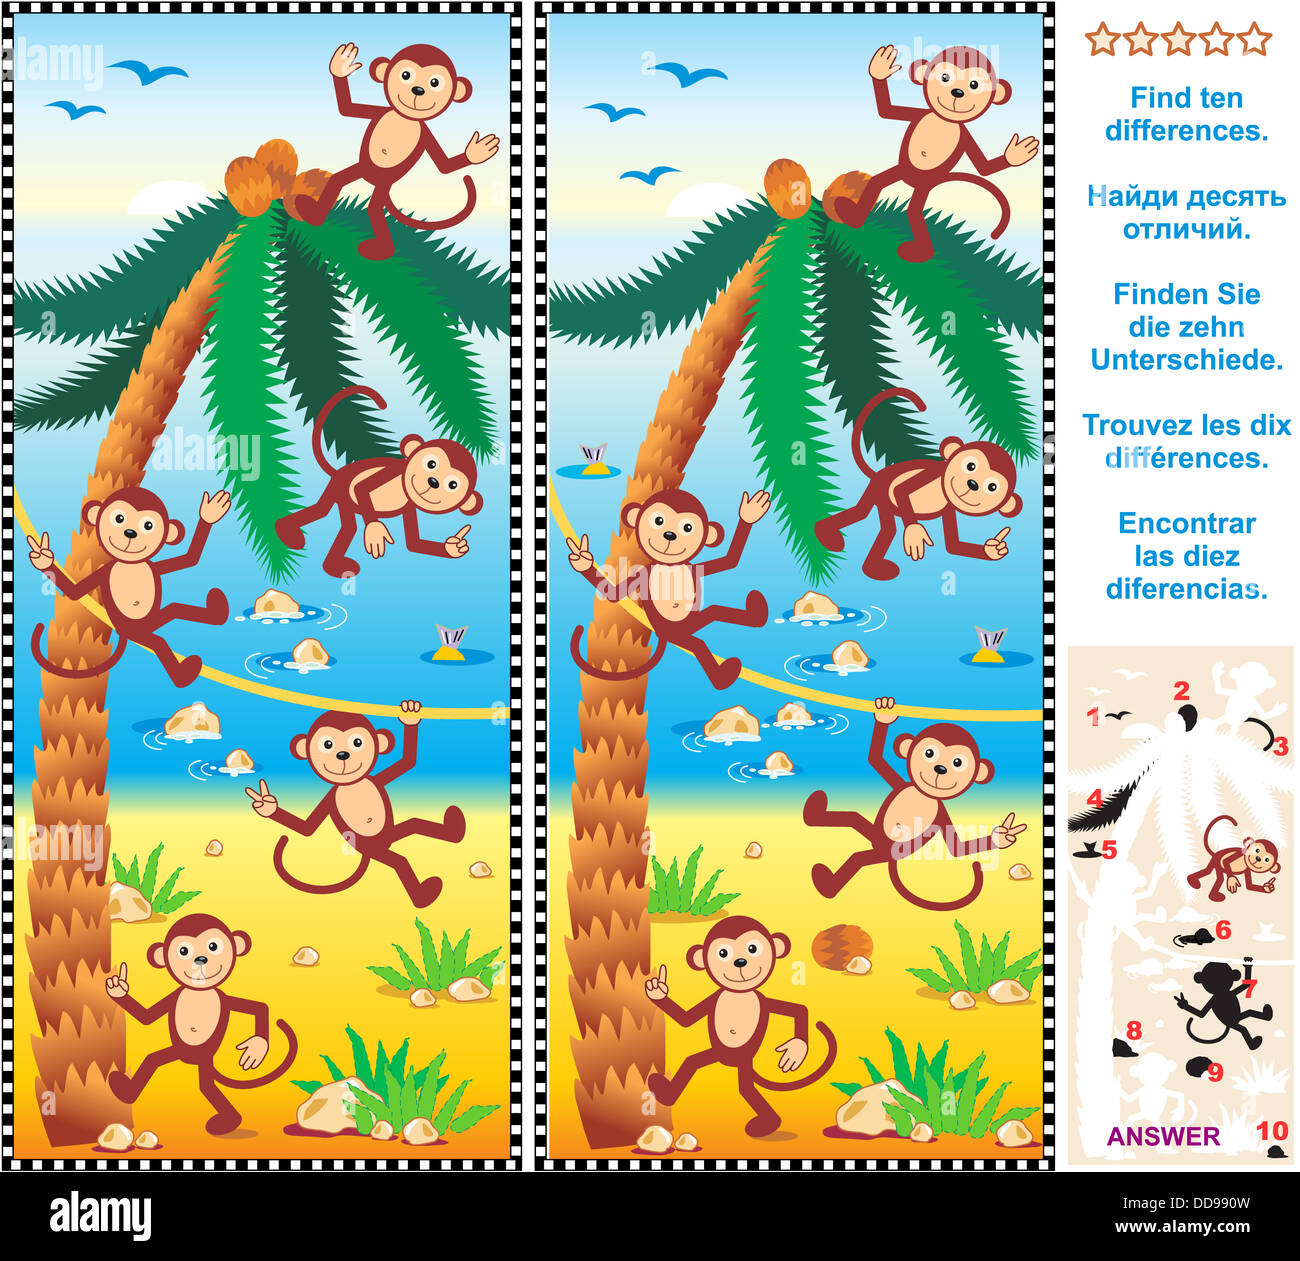 Visual Puzzle Find The Ten Differences Between The Two